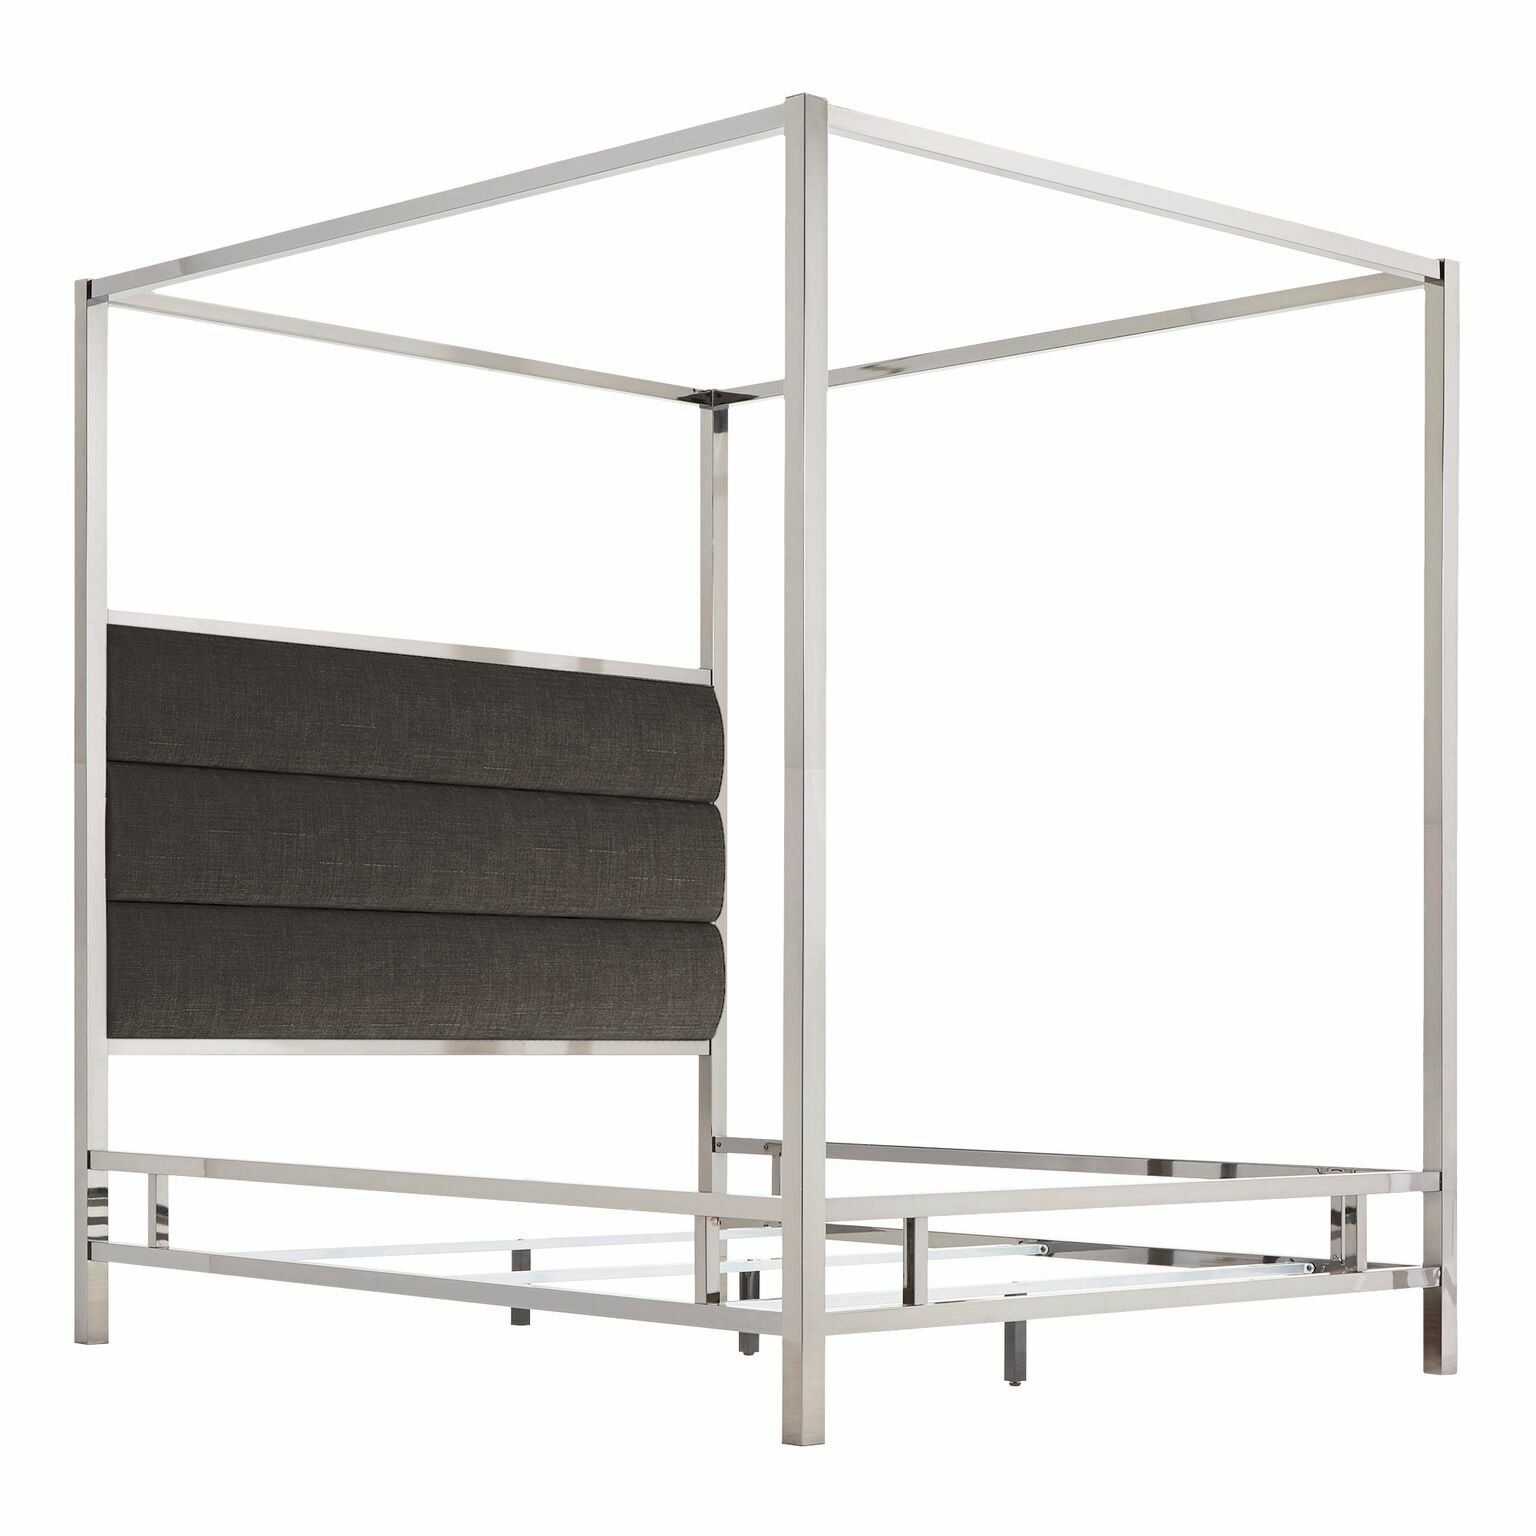 Wicklund Upholstered Canopy Bed Color (Frame/Headboard): Chrome Metal/Dark Gray, Size: Full